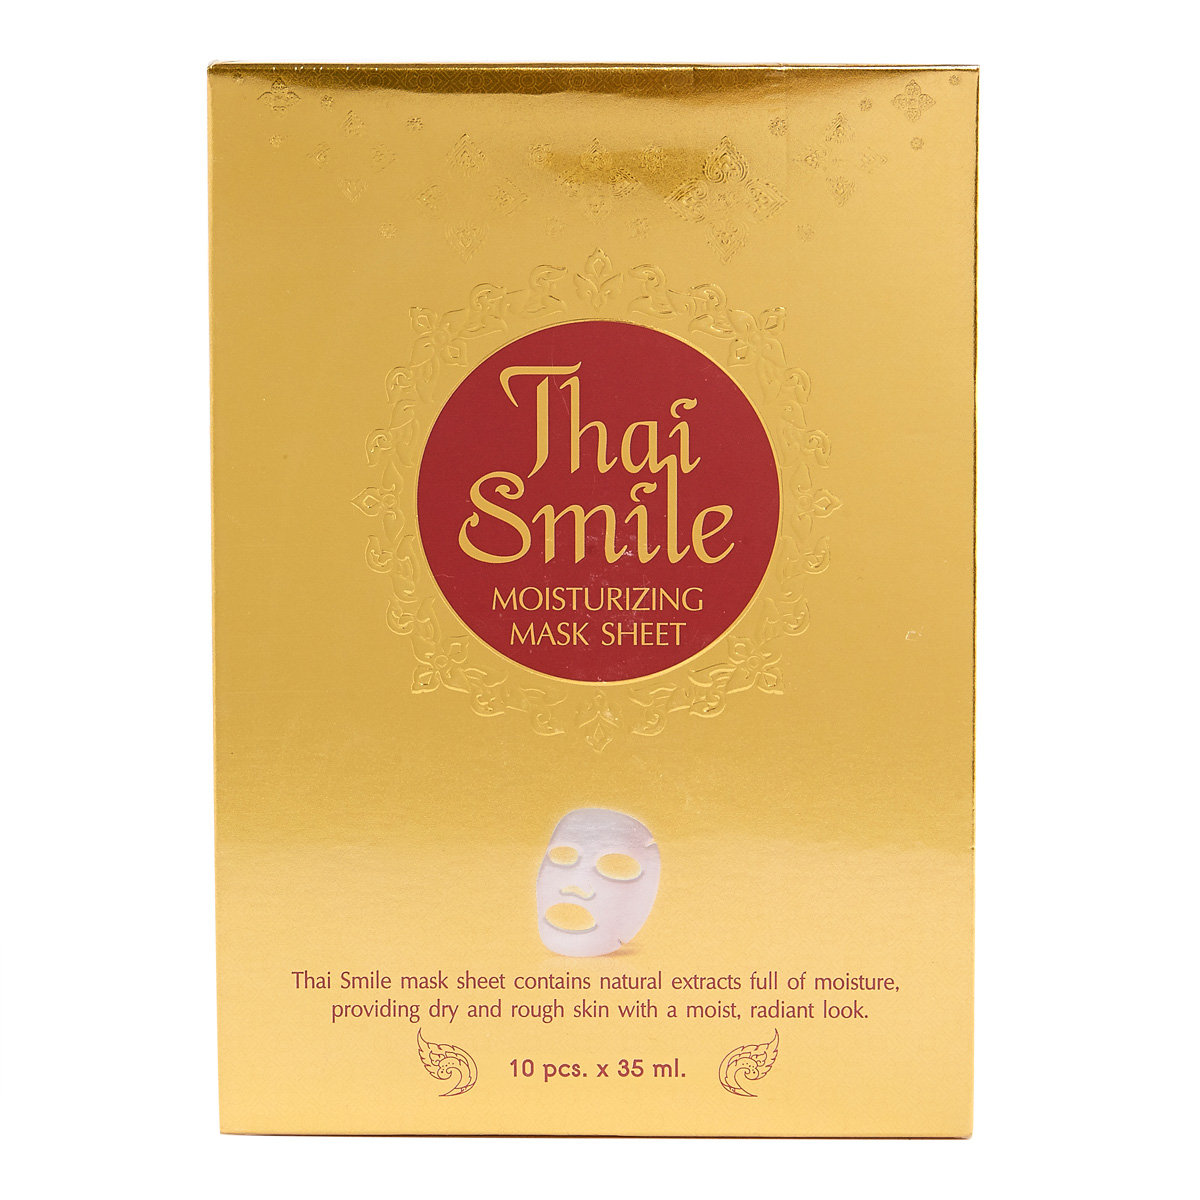 Thai Smile moist mask sheet